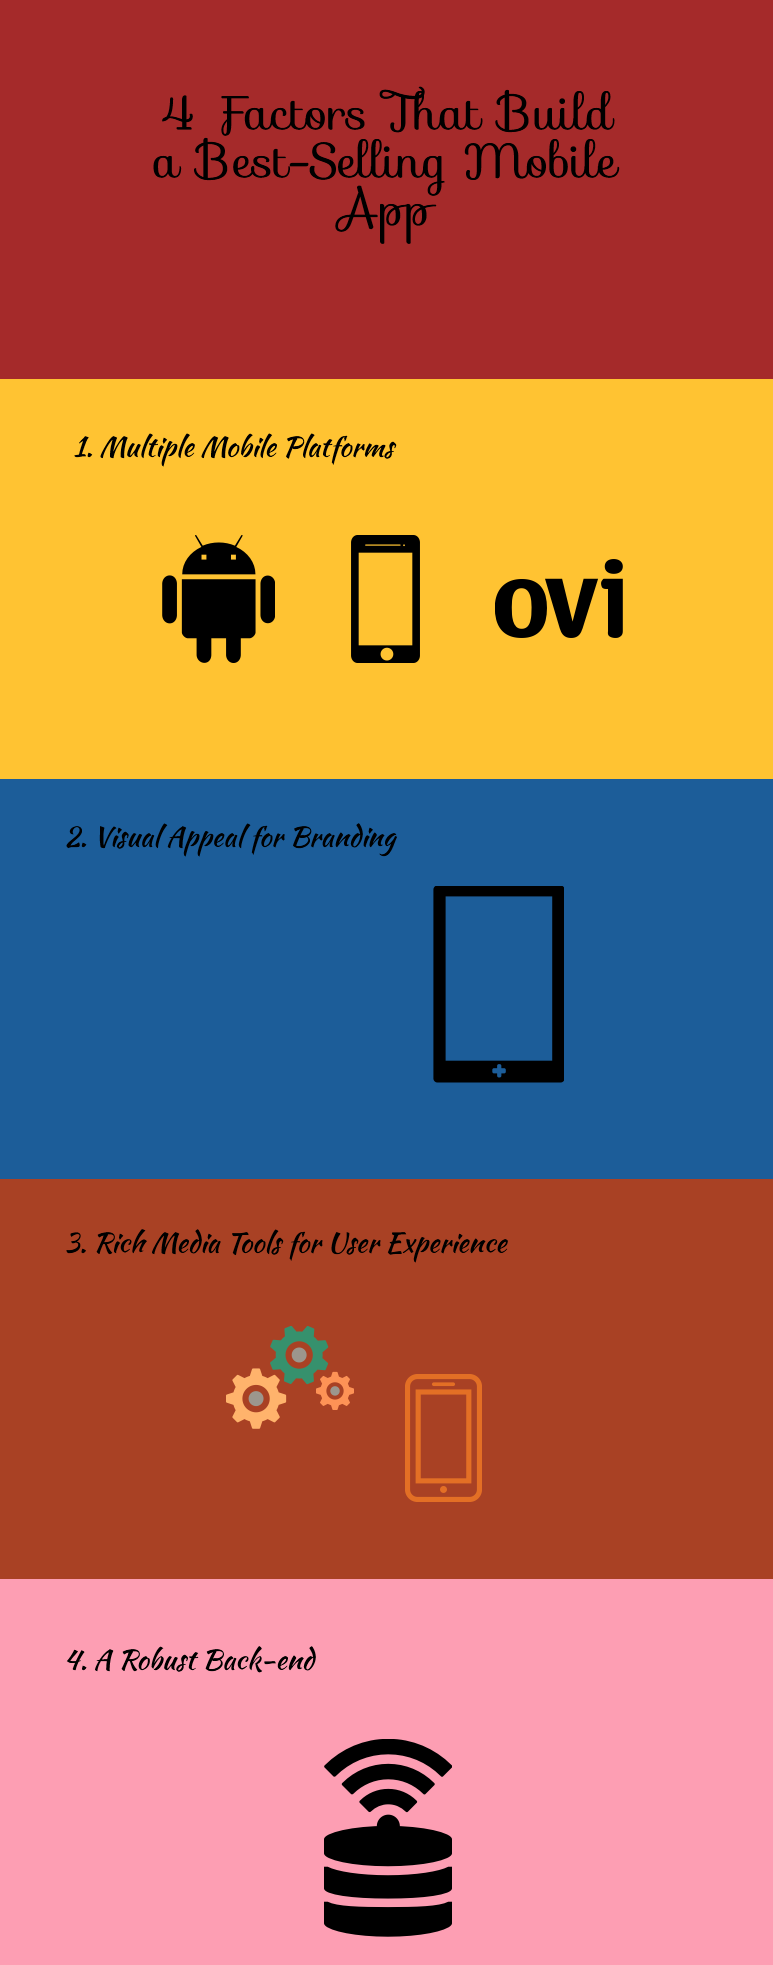 Consider these 4 Factors That Build a Best-Selling #Mobile #App! http://goo.gl/0Di4ya